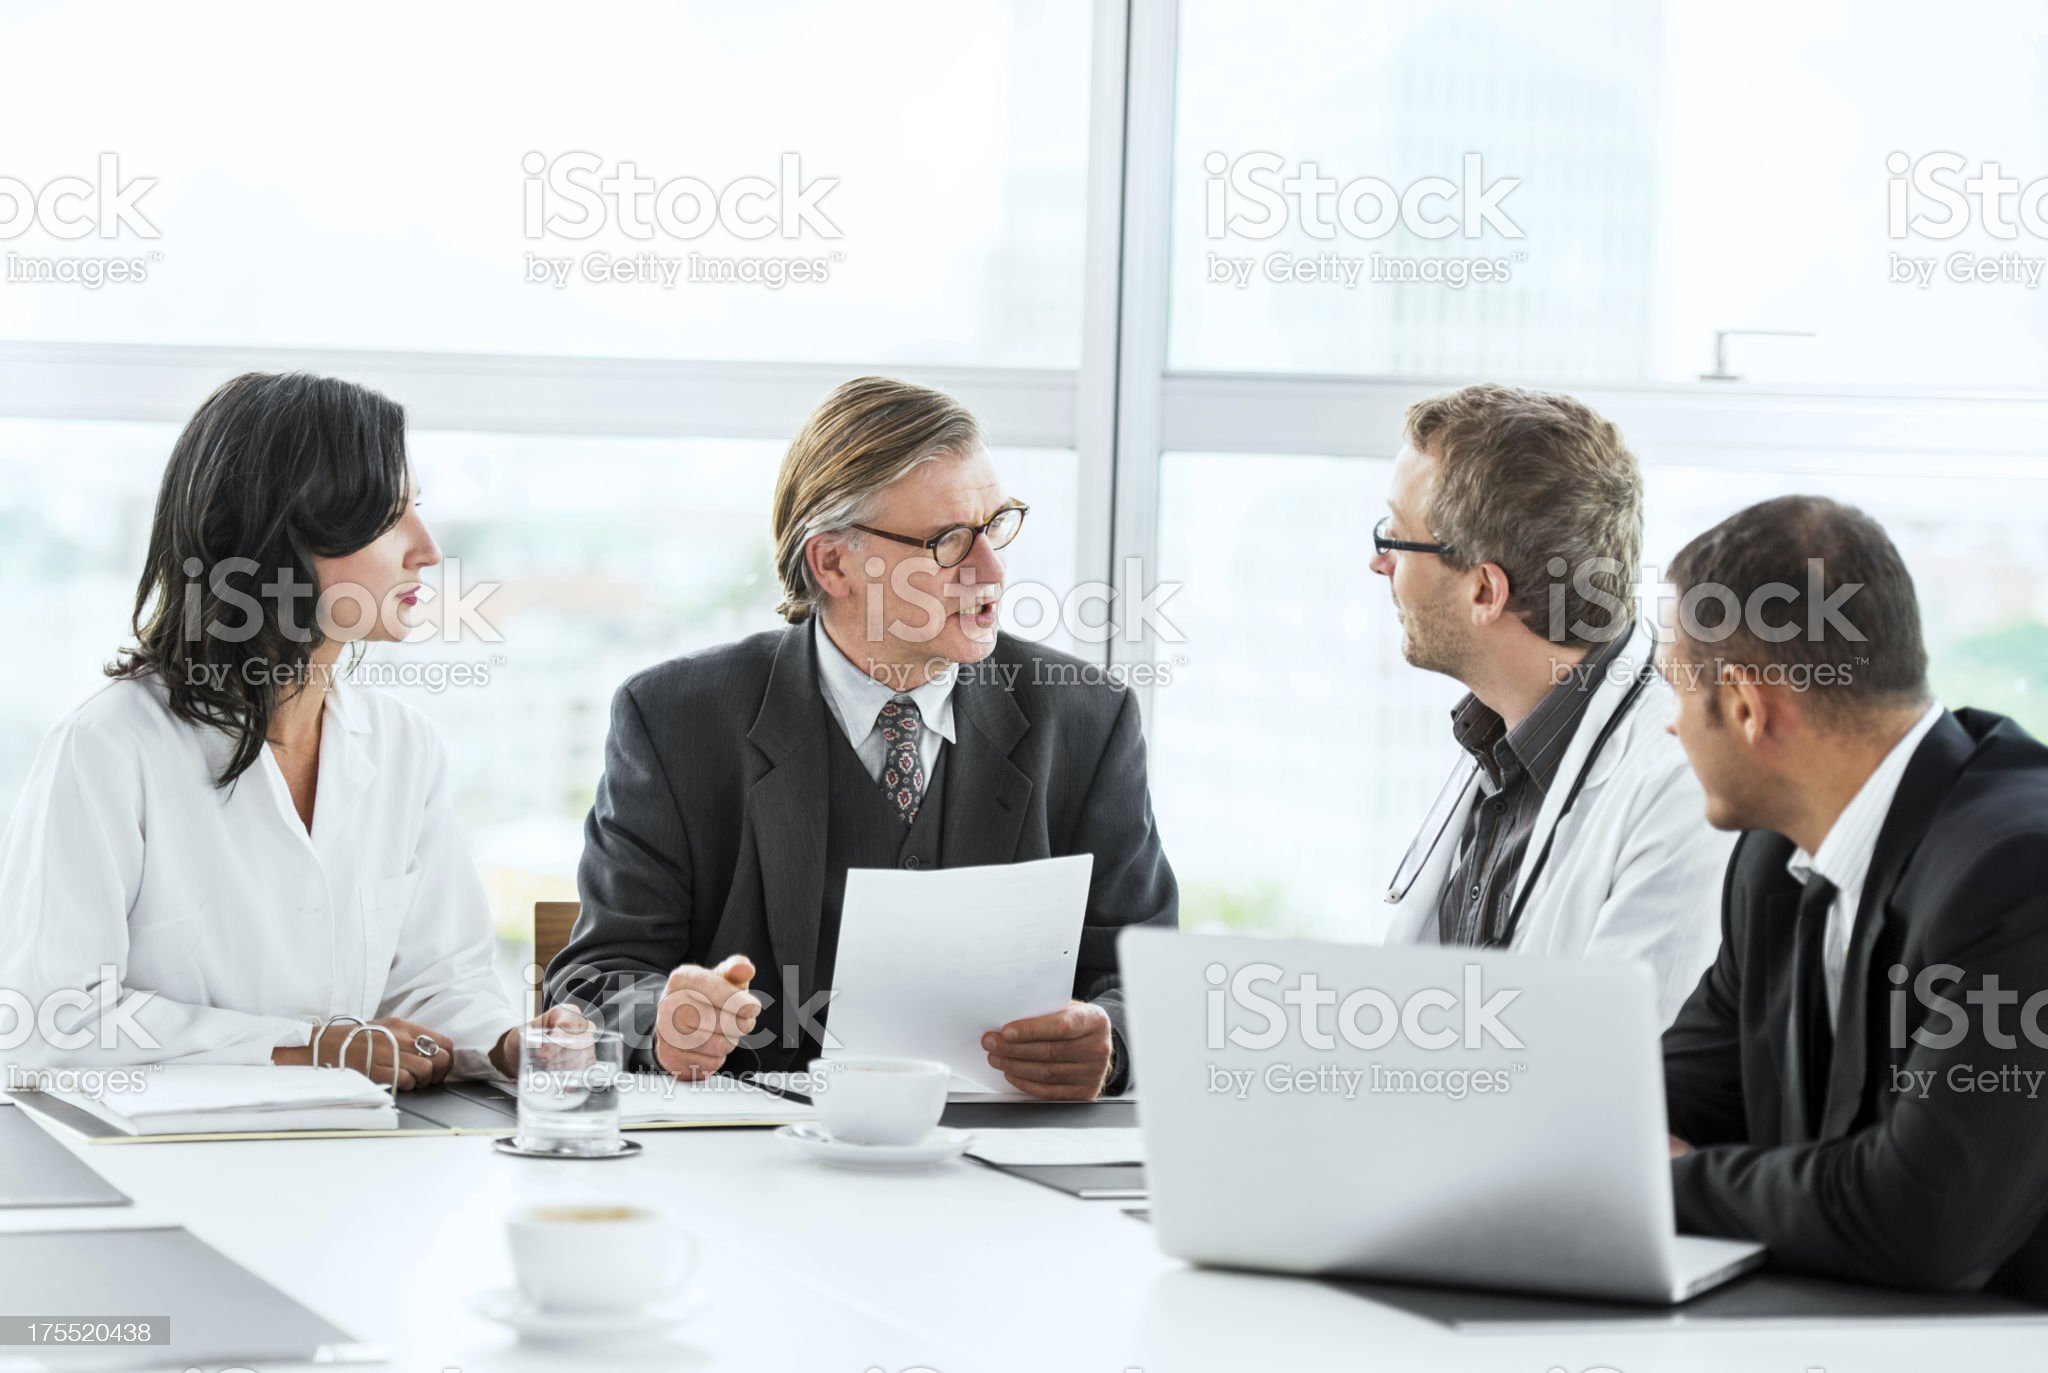 Businessmen having a meeting with doctors. royalty-free stock photo